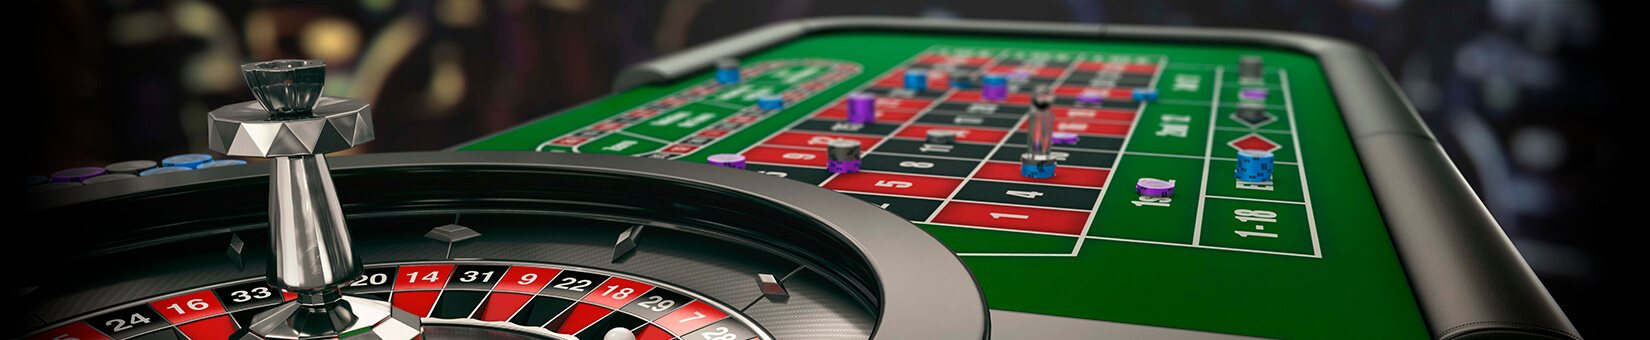 Cassino online free chinese roulette roleta - 315493